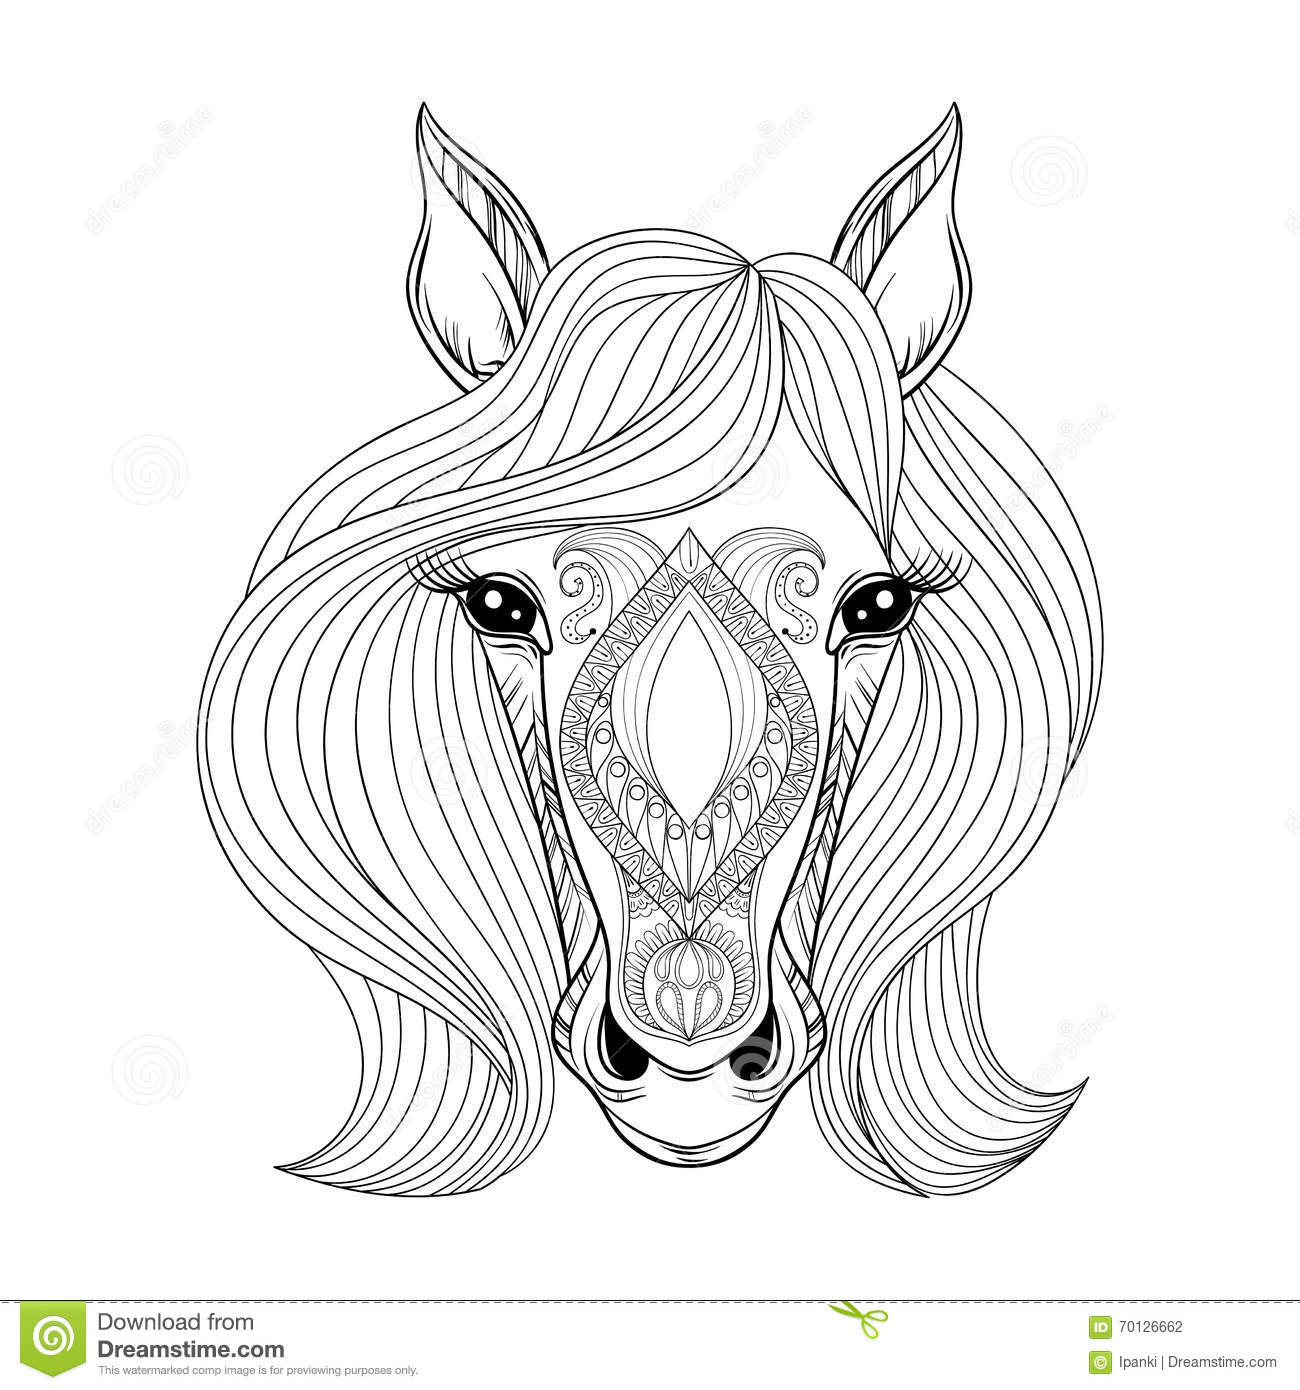 Royalty Free Vector Download Horse Coloring